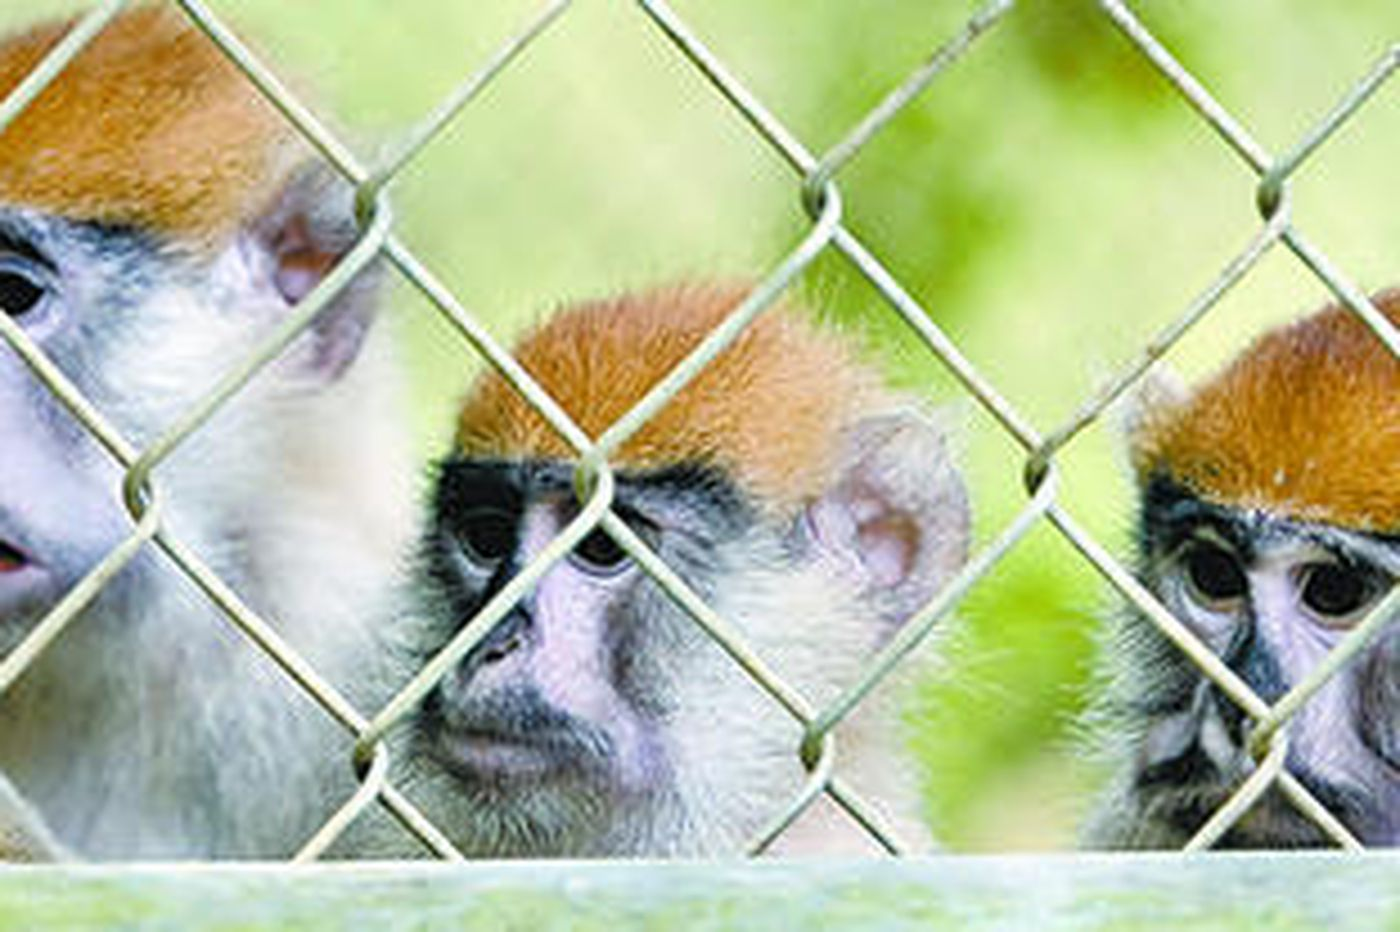 Puerto Rico hunting, killing troublesome monkeys